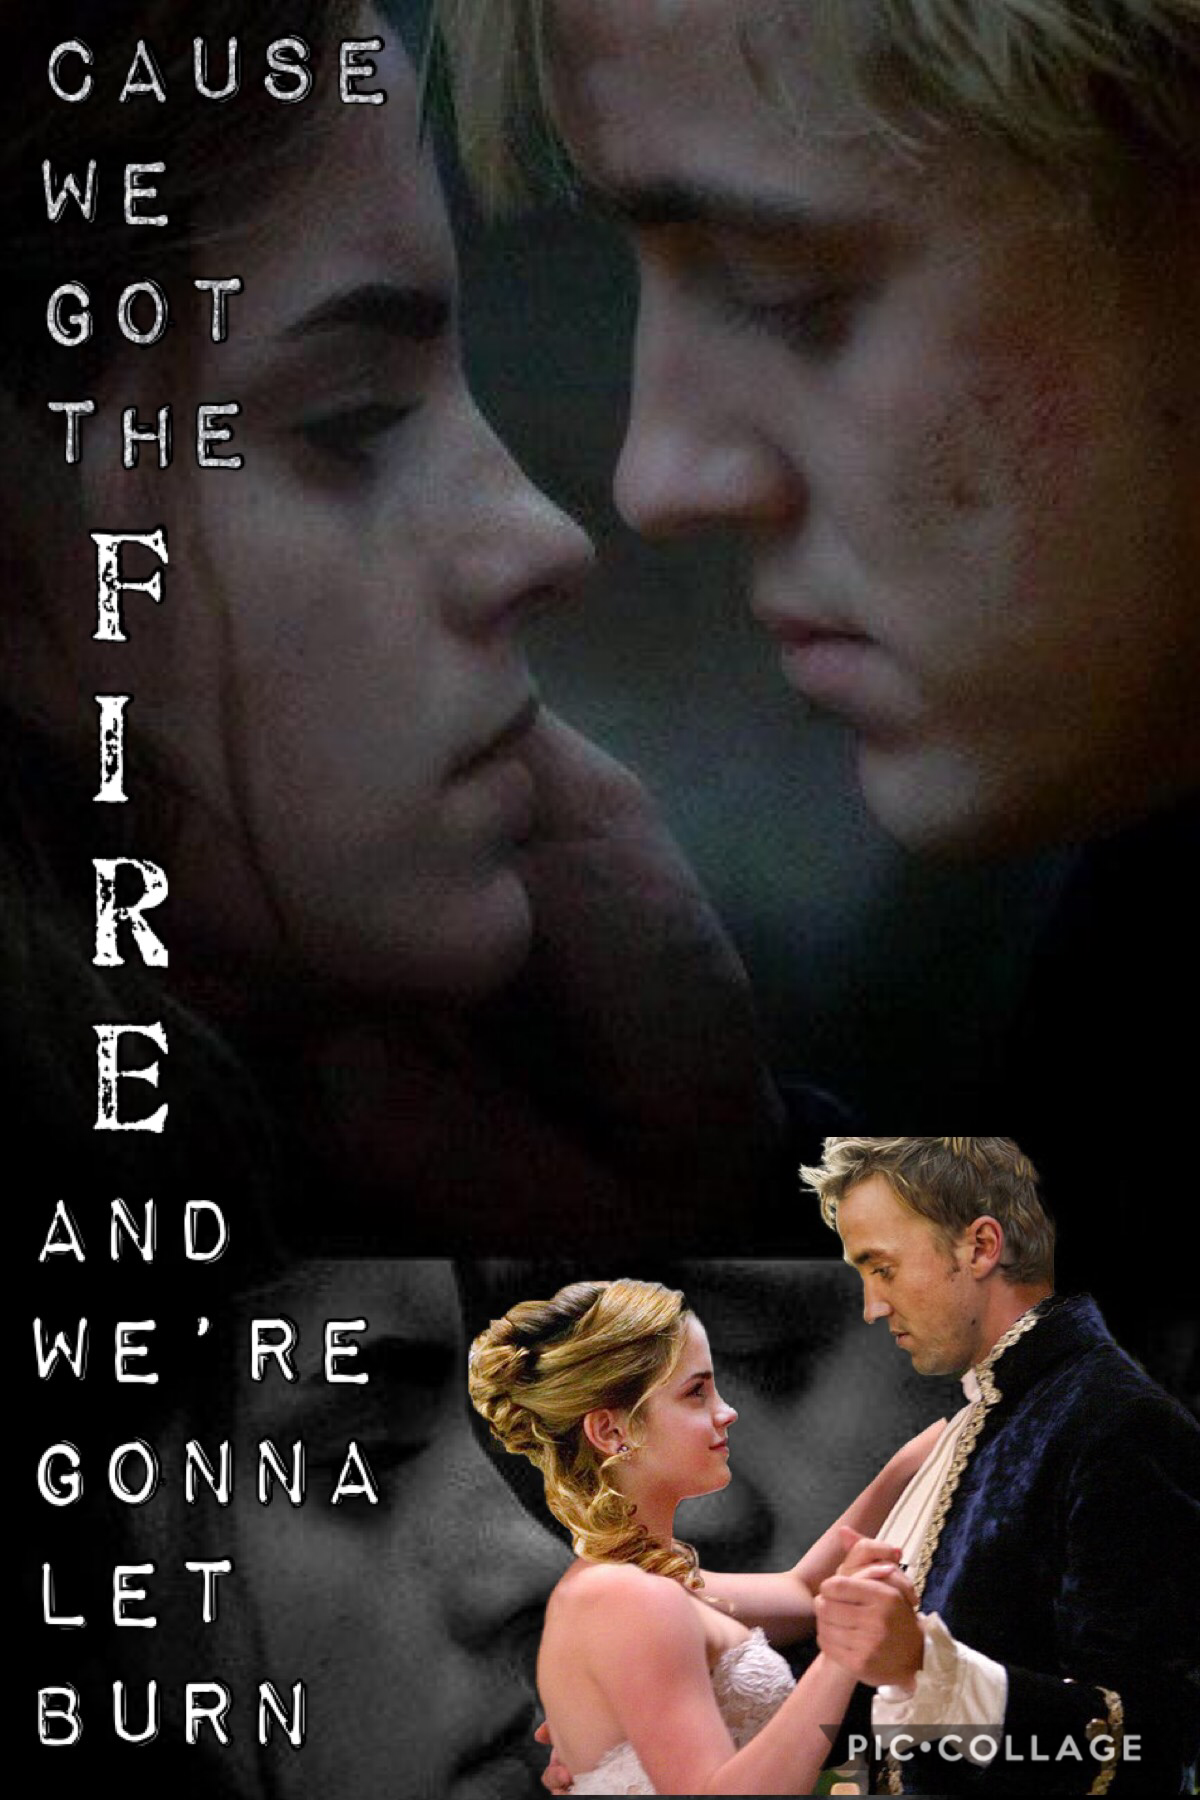 Collage by GrangerPotterMalfoy